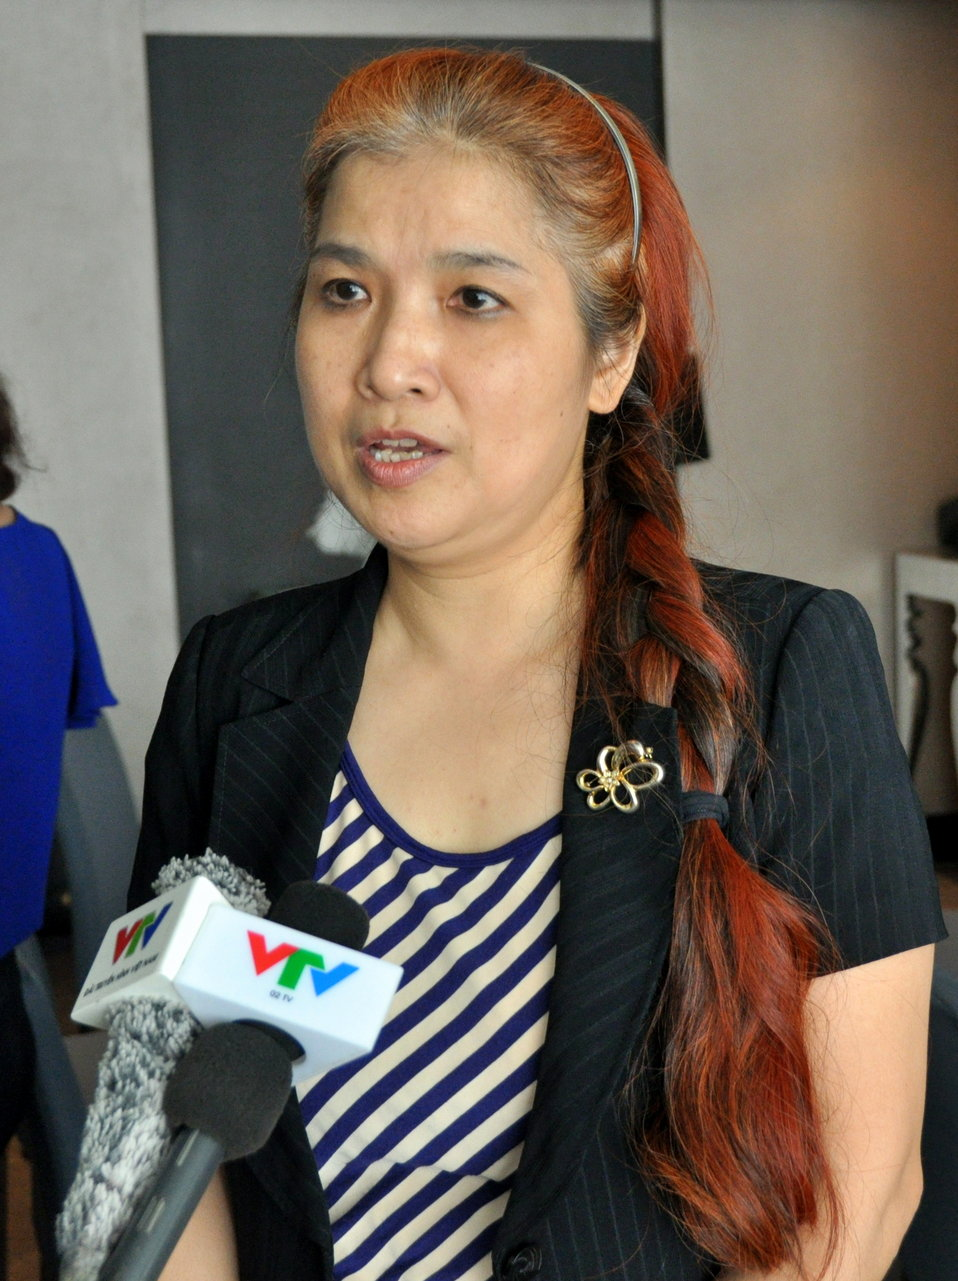 Mrs. Pham Hoai Giang of USAID HIV Workplace Project anwers intervew questions from VTV4 and O2TV.